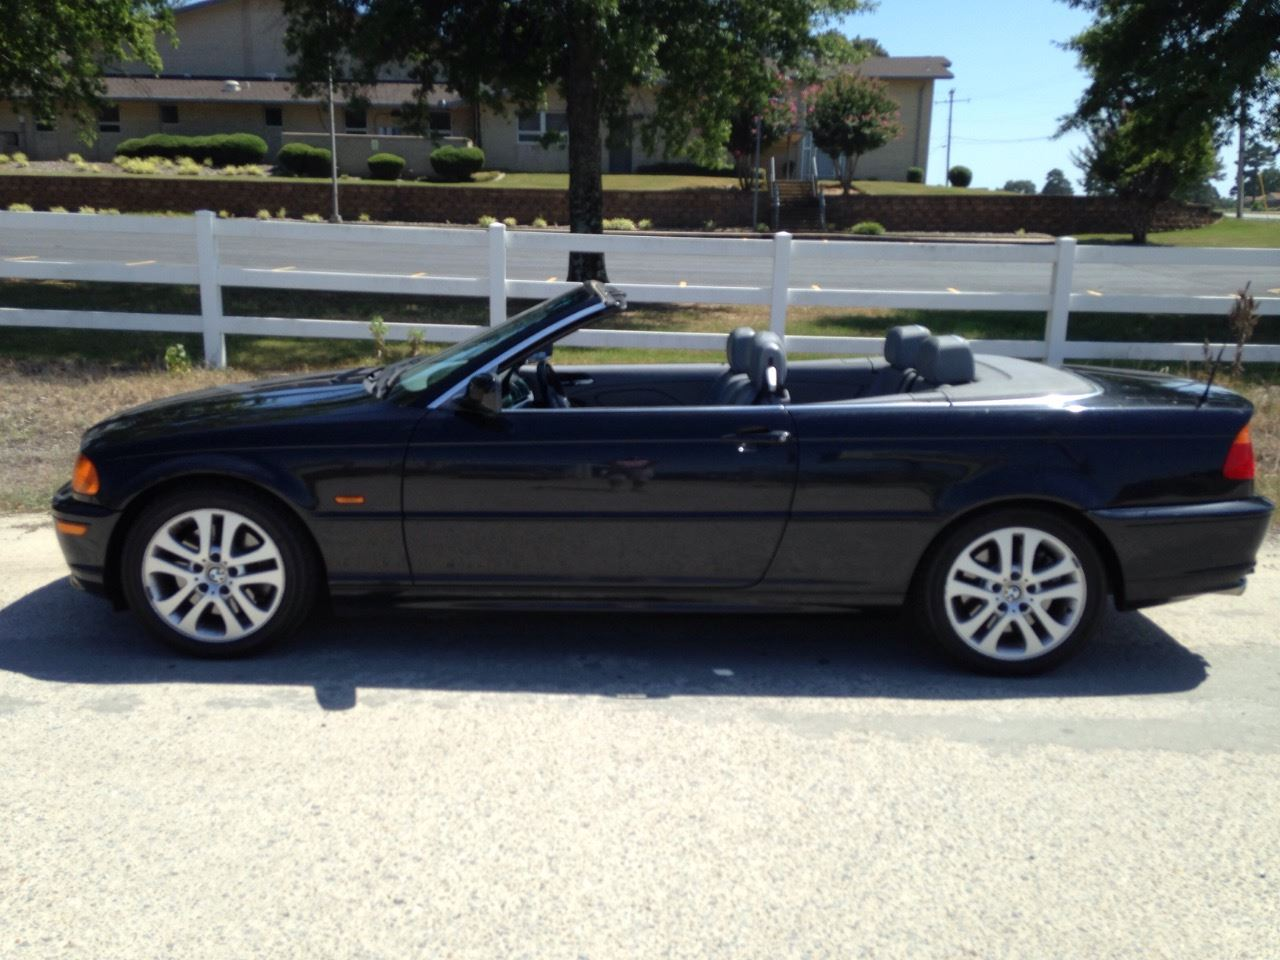 coupe bmw sale youtube for dgc by ma sales in offered watch ashland auto